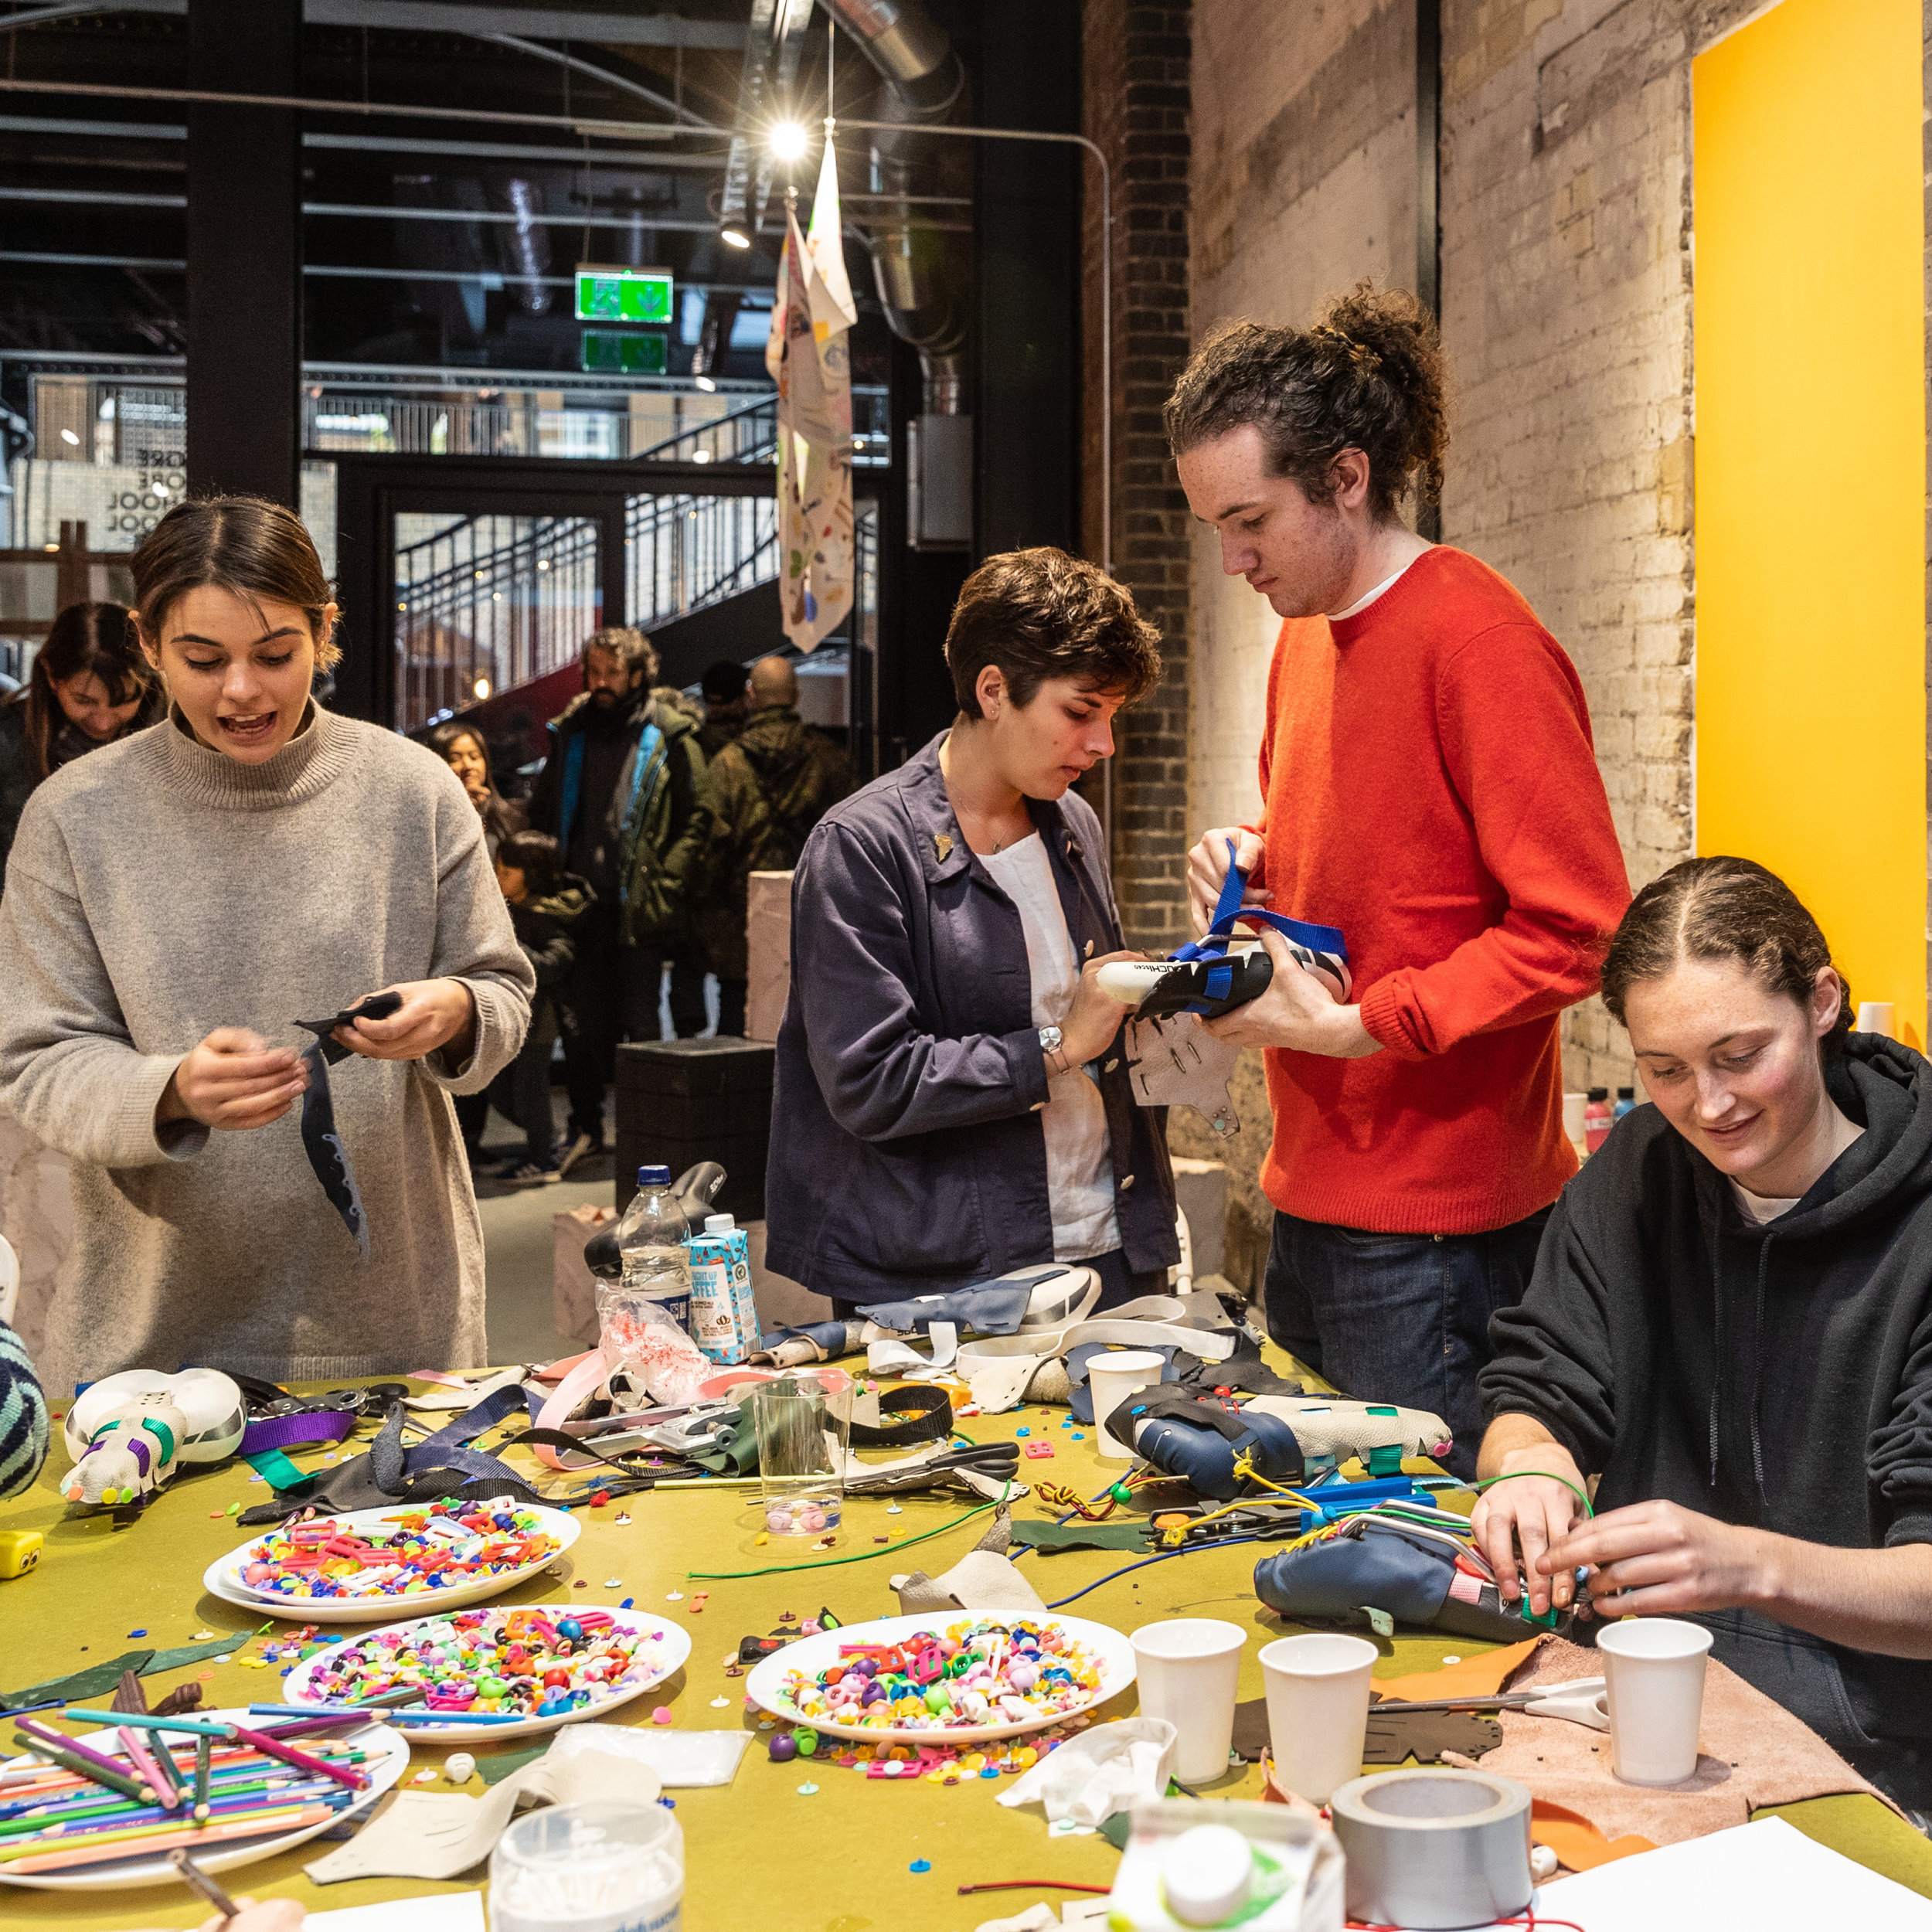 STORE Store making a saddle cover workshop, Coal Drops Yard, King's Cross